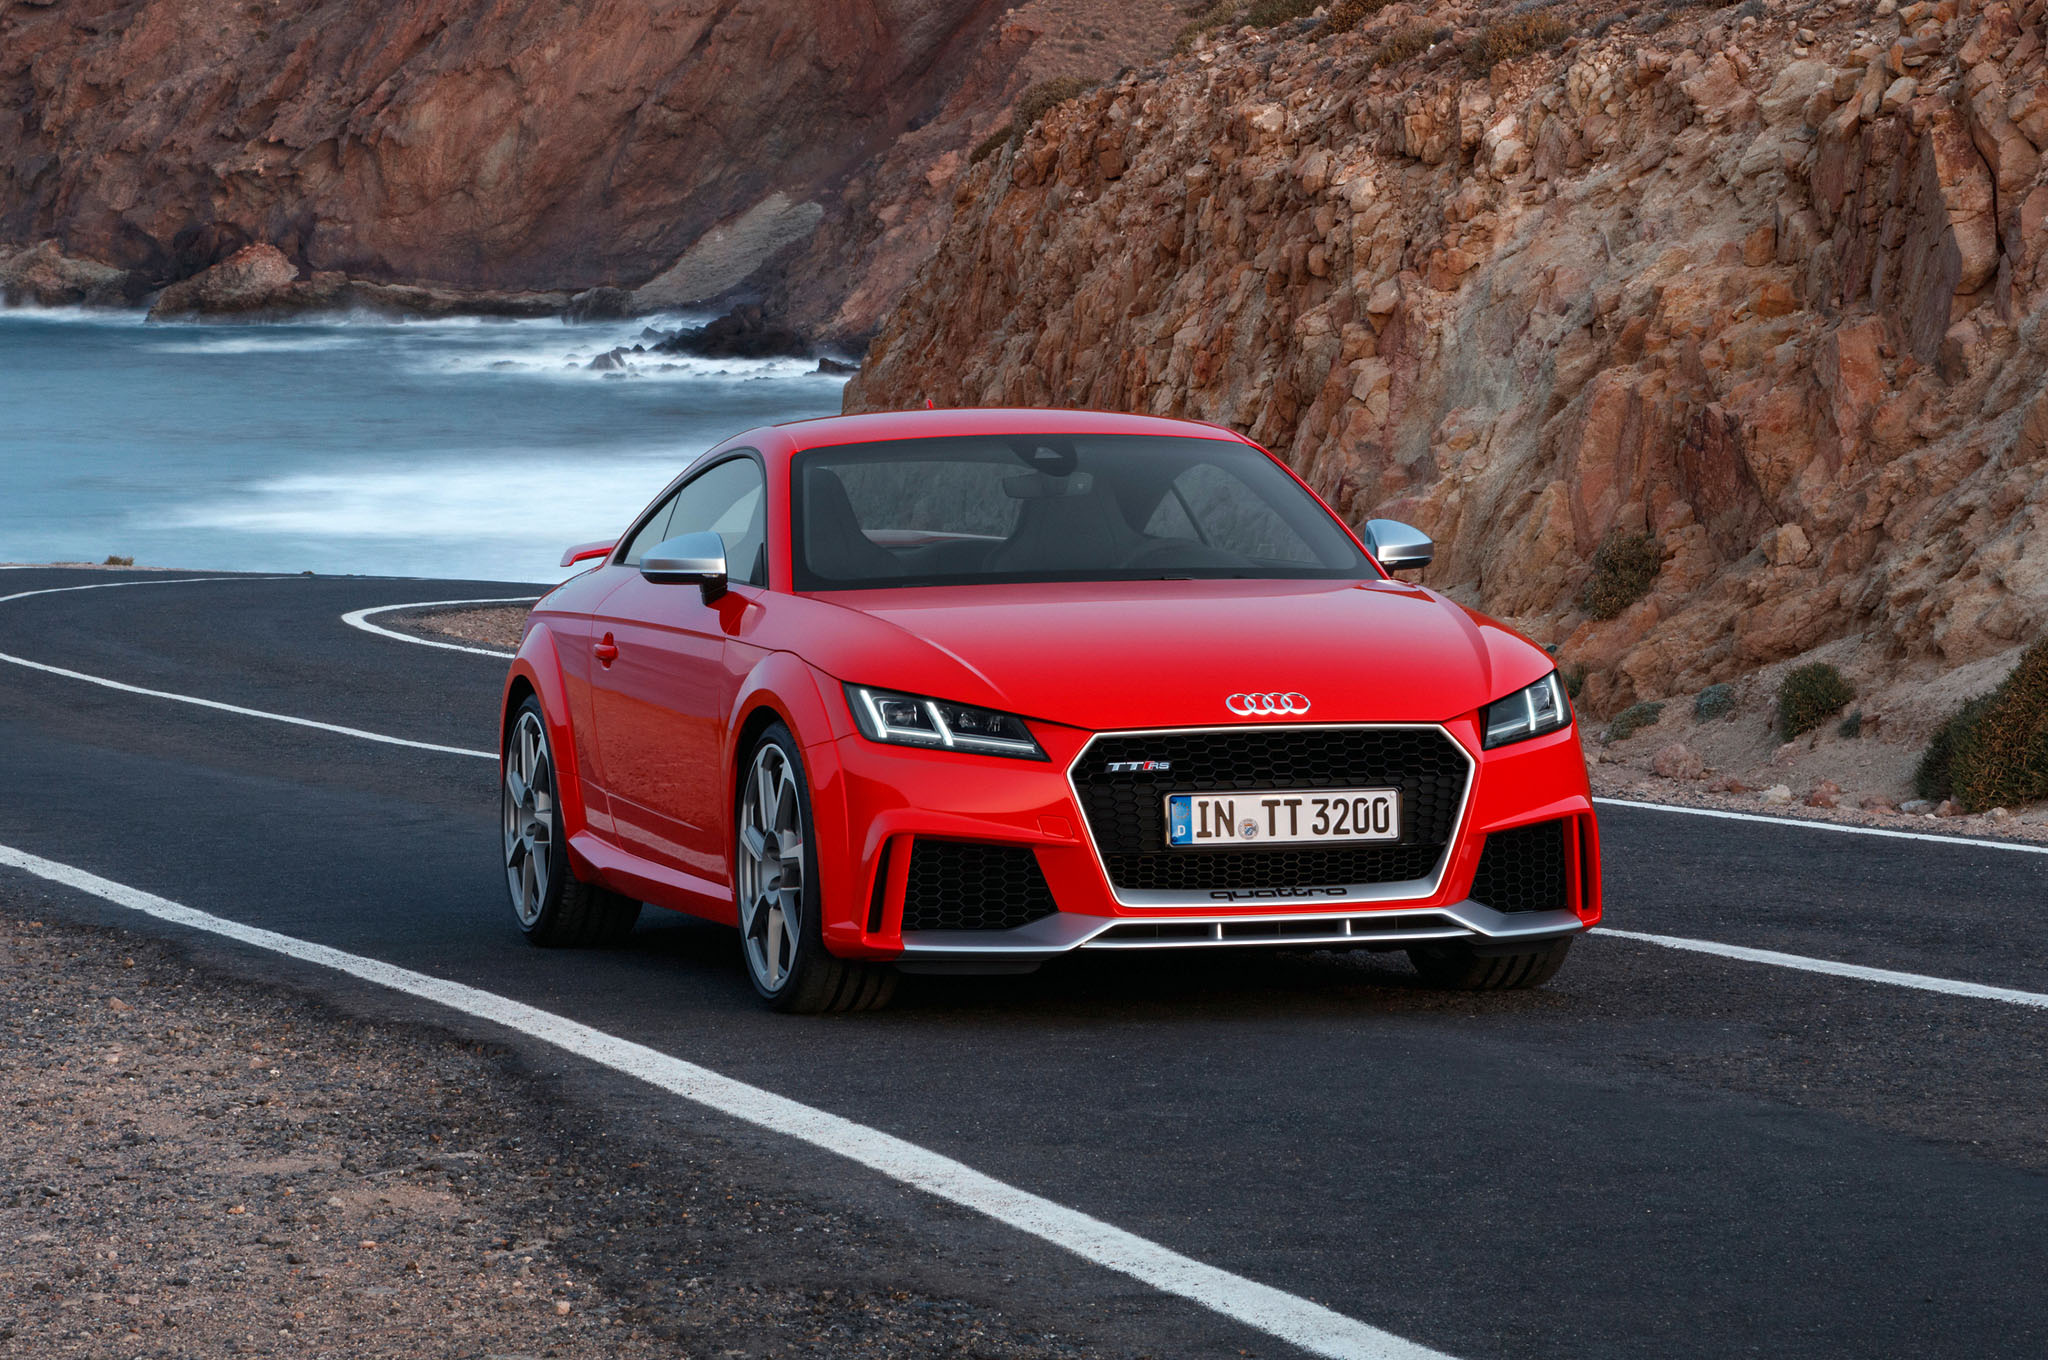 2017 Audi TT RS Coupe 2048x1360 Wallpaper | HD Car Wallpapers